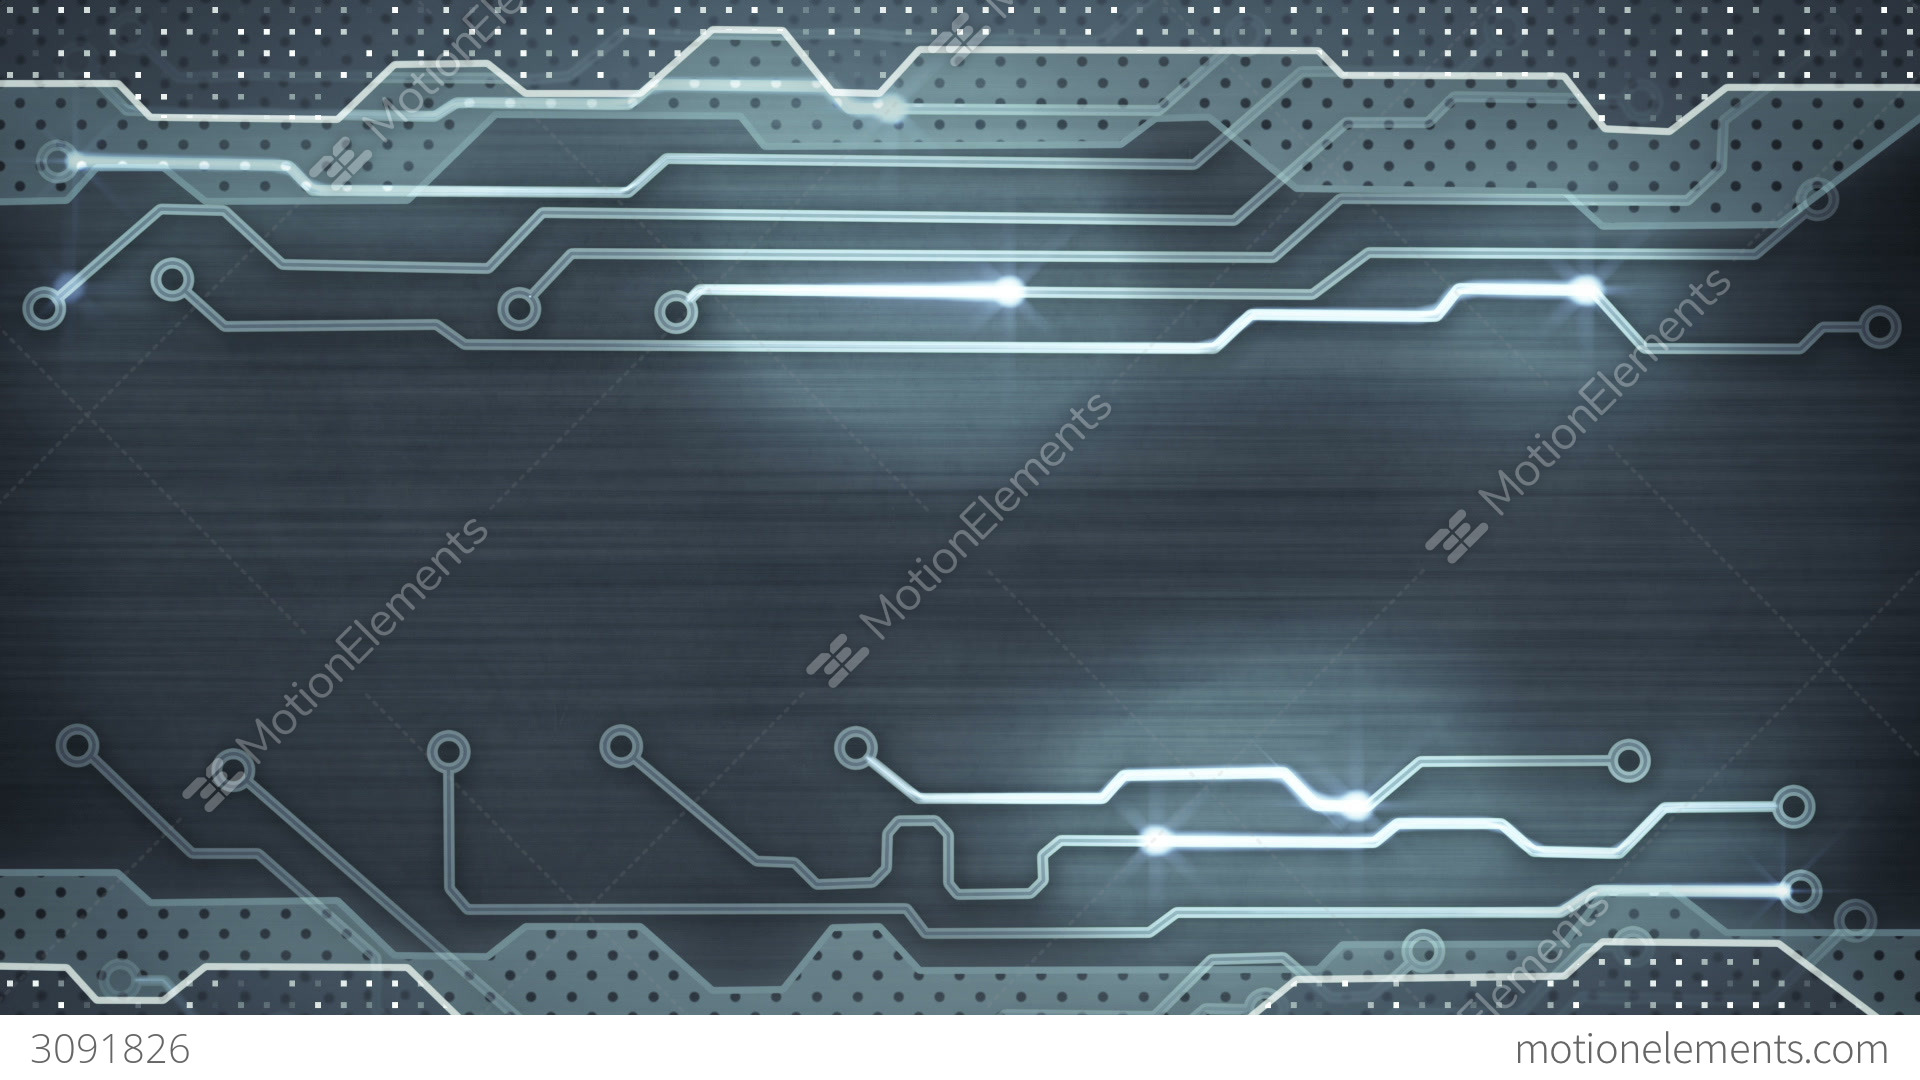 Learning Concept Circuit Board With Glassesquot Stock Photo And Royalty